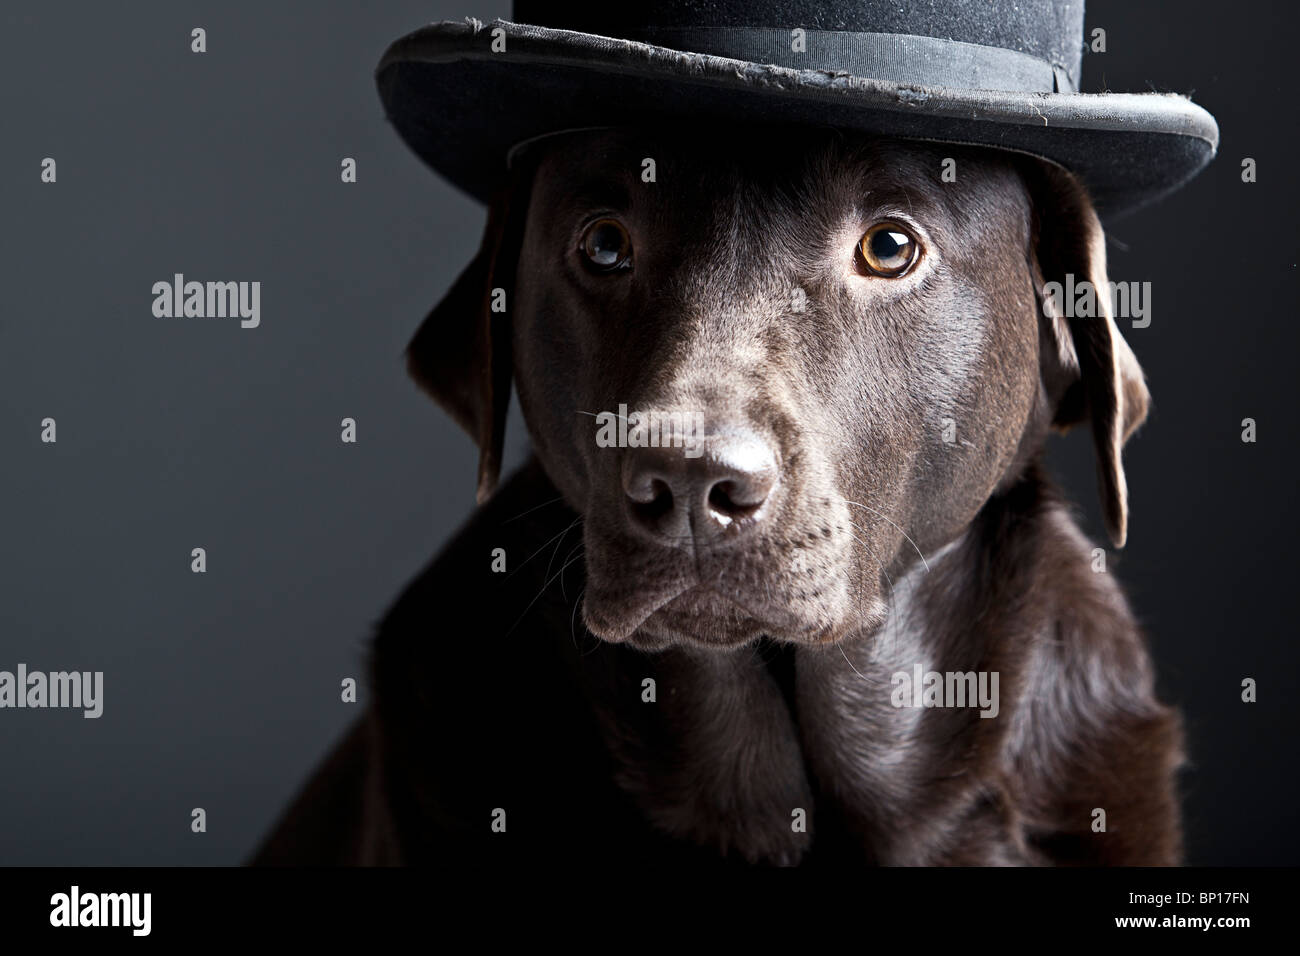 Shot of a Handsome Chocolate Labrador in Bowler Hat - Stock Image